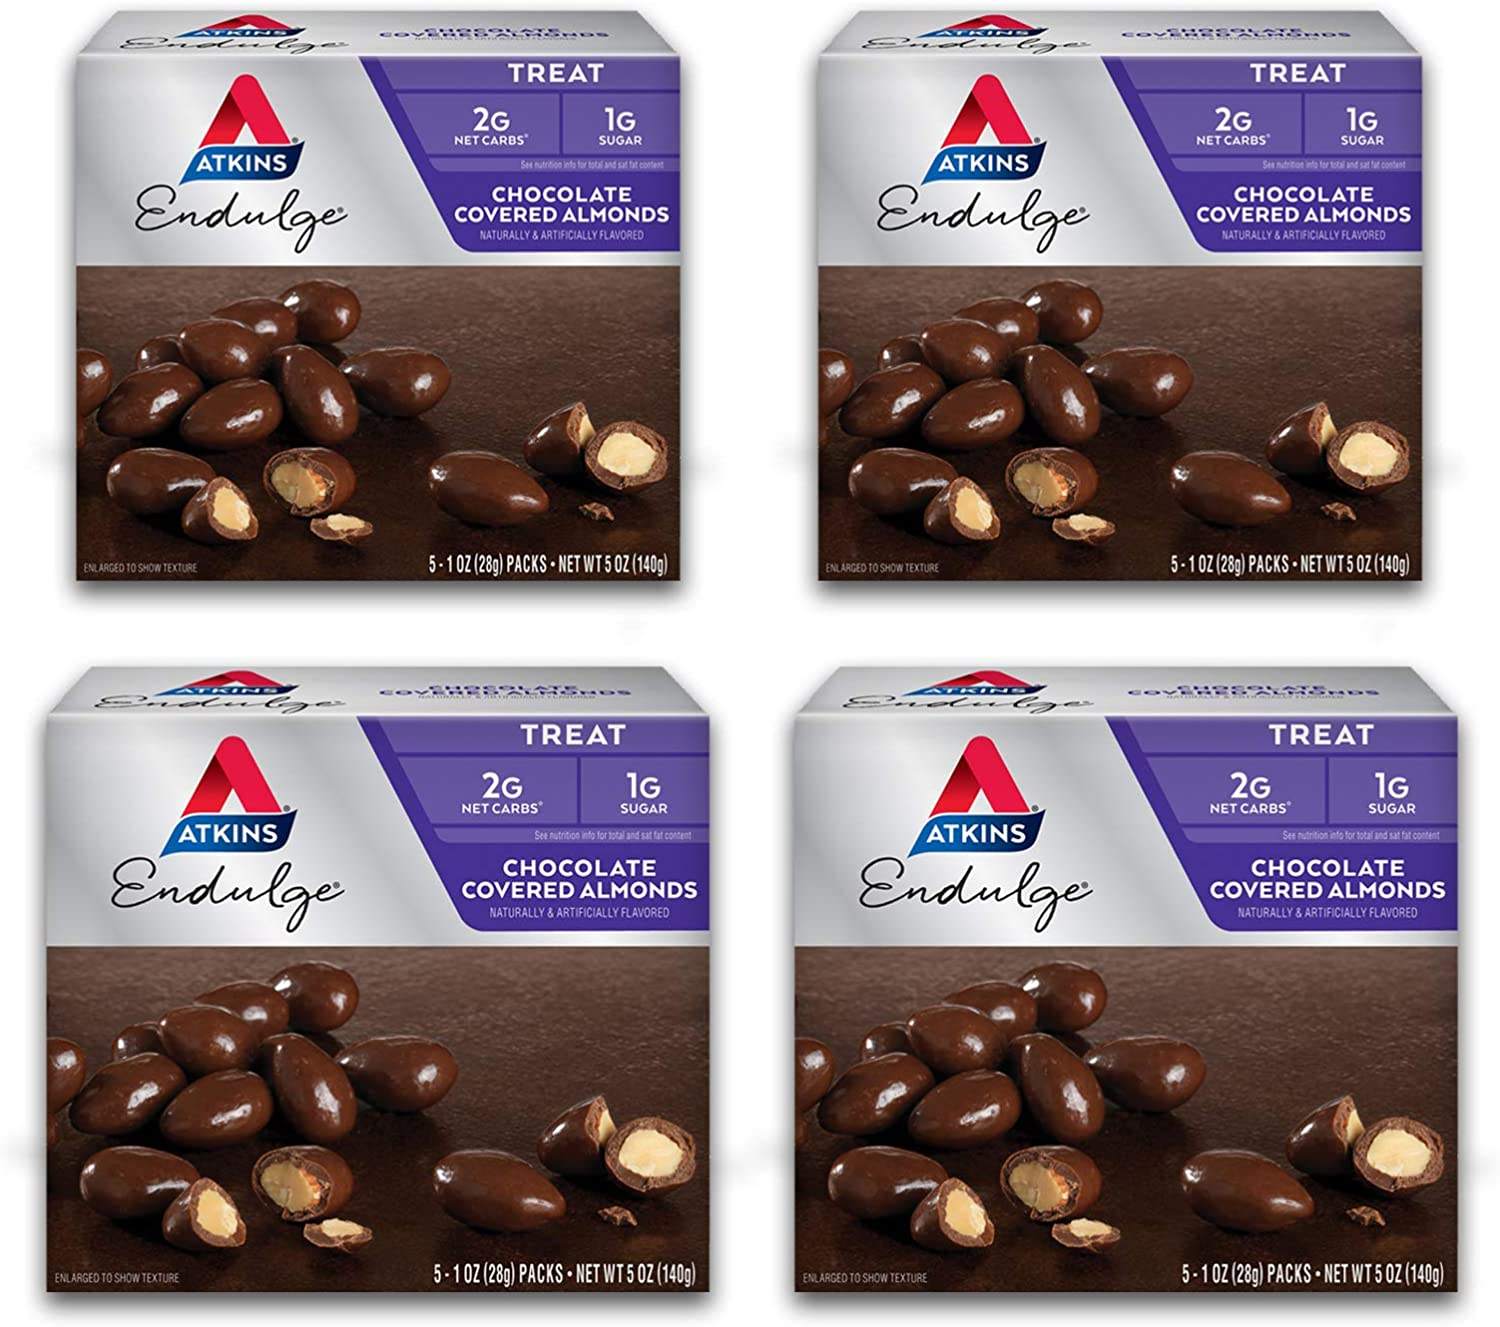 Atkins Endulge Treat Chocolate Covered Almonds. Rich & Crunchy. Keto-Friendly. (20 Pouches)